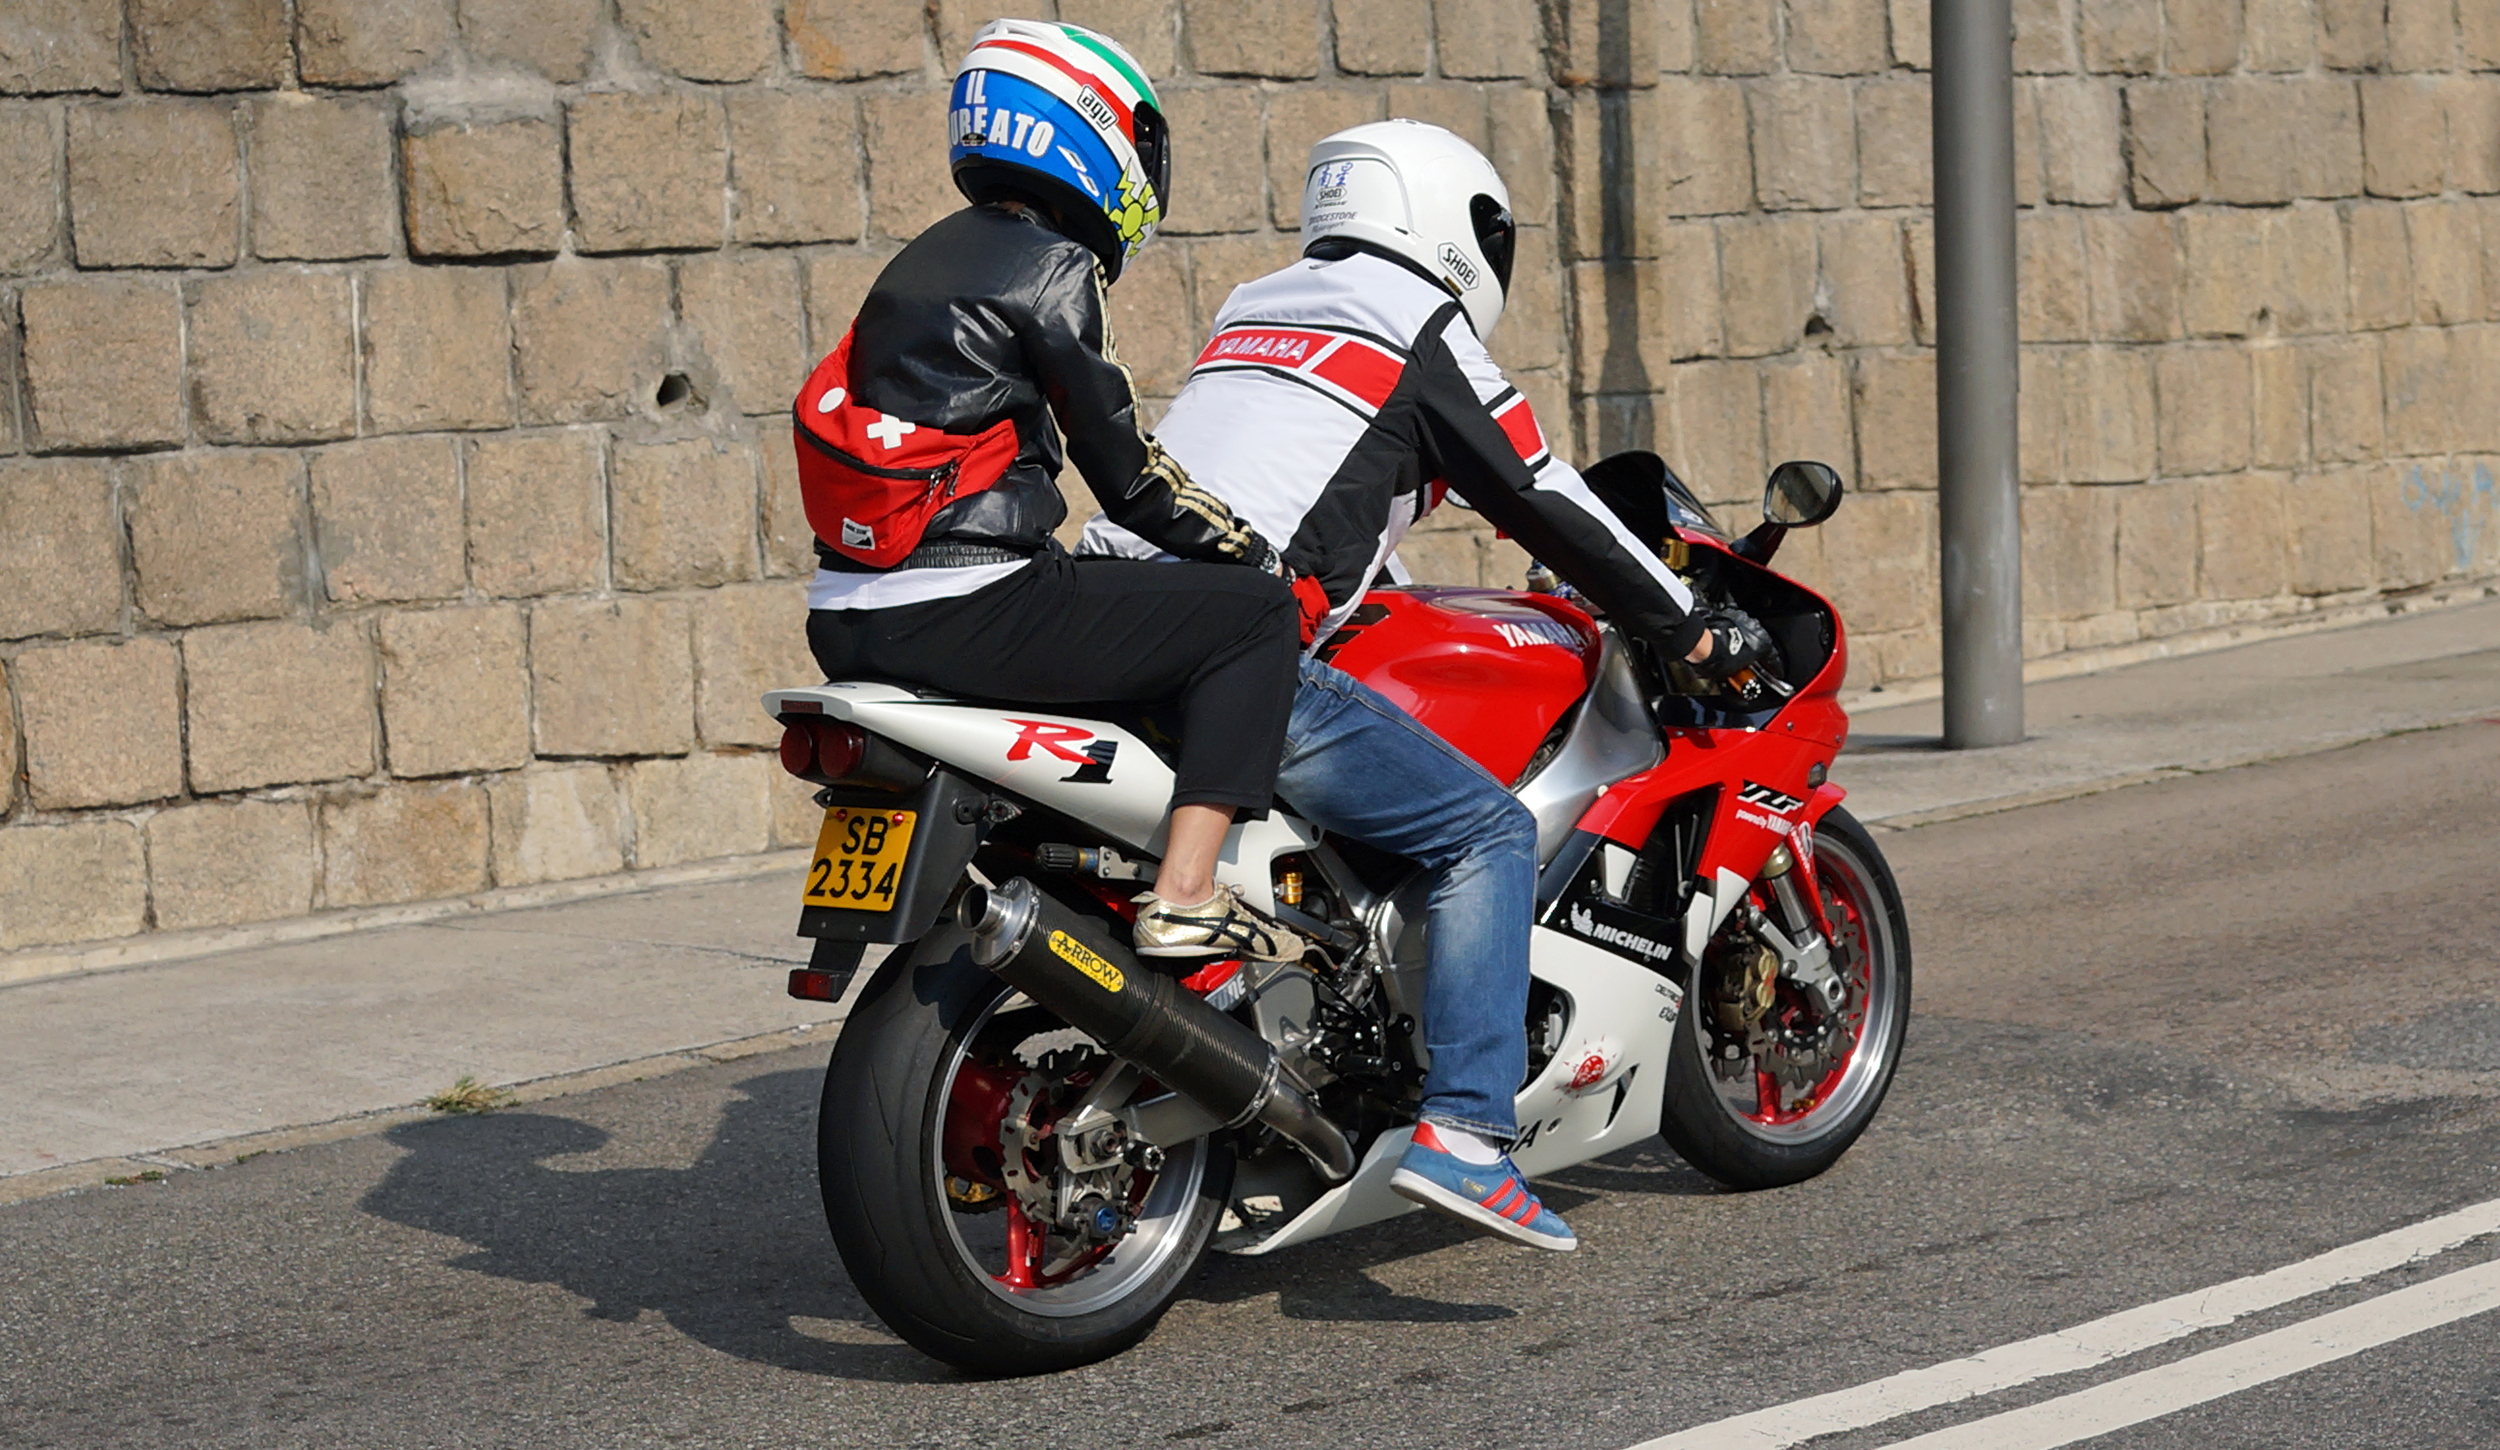 Of much more interest to me is the bikers who are also out in force on a Sunday although this looks a little uncomfortable for the young lady on the back...